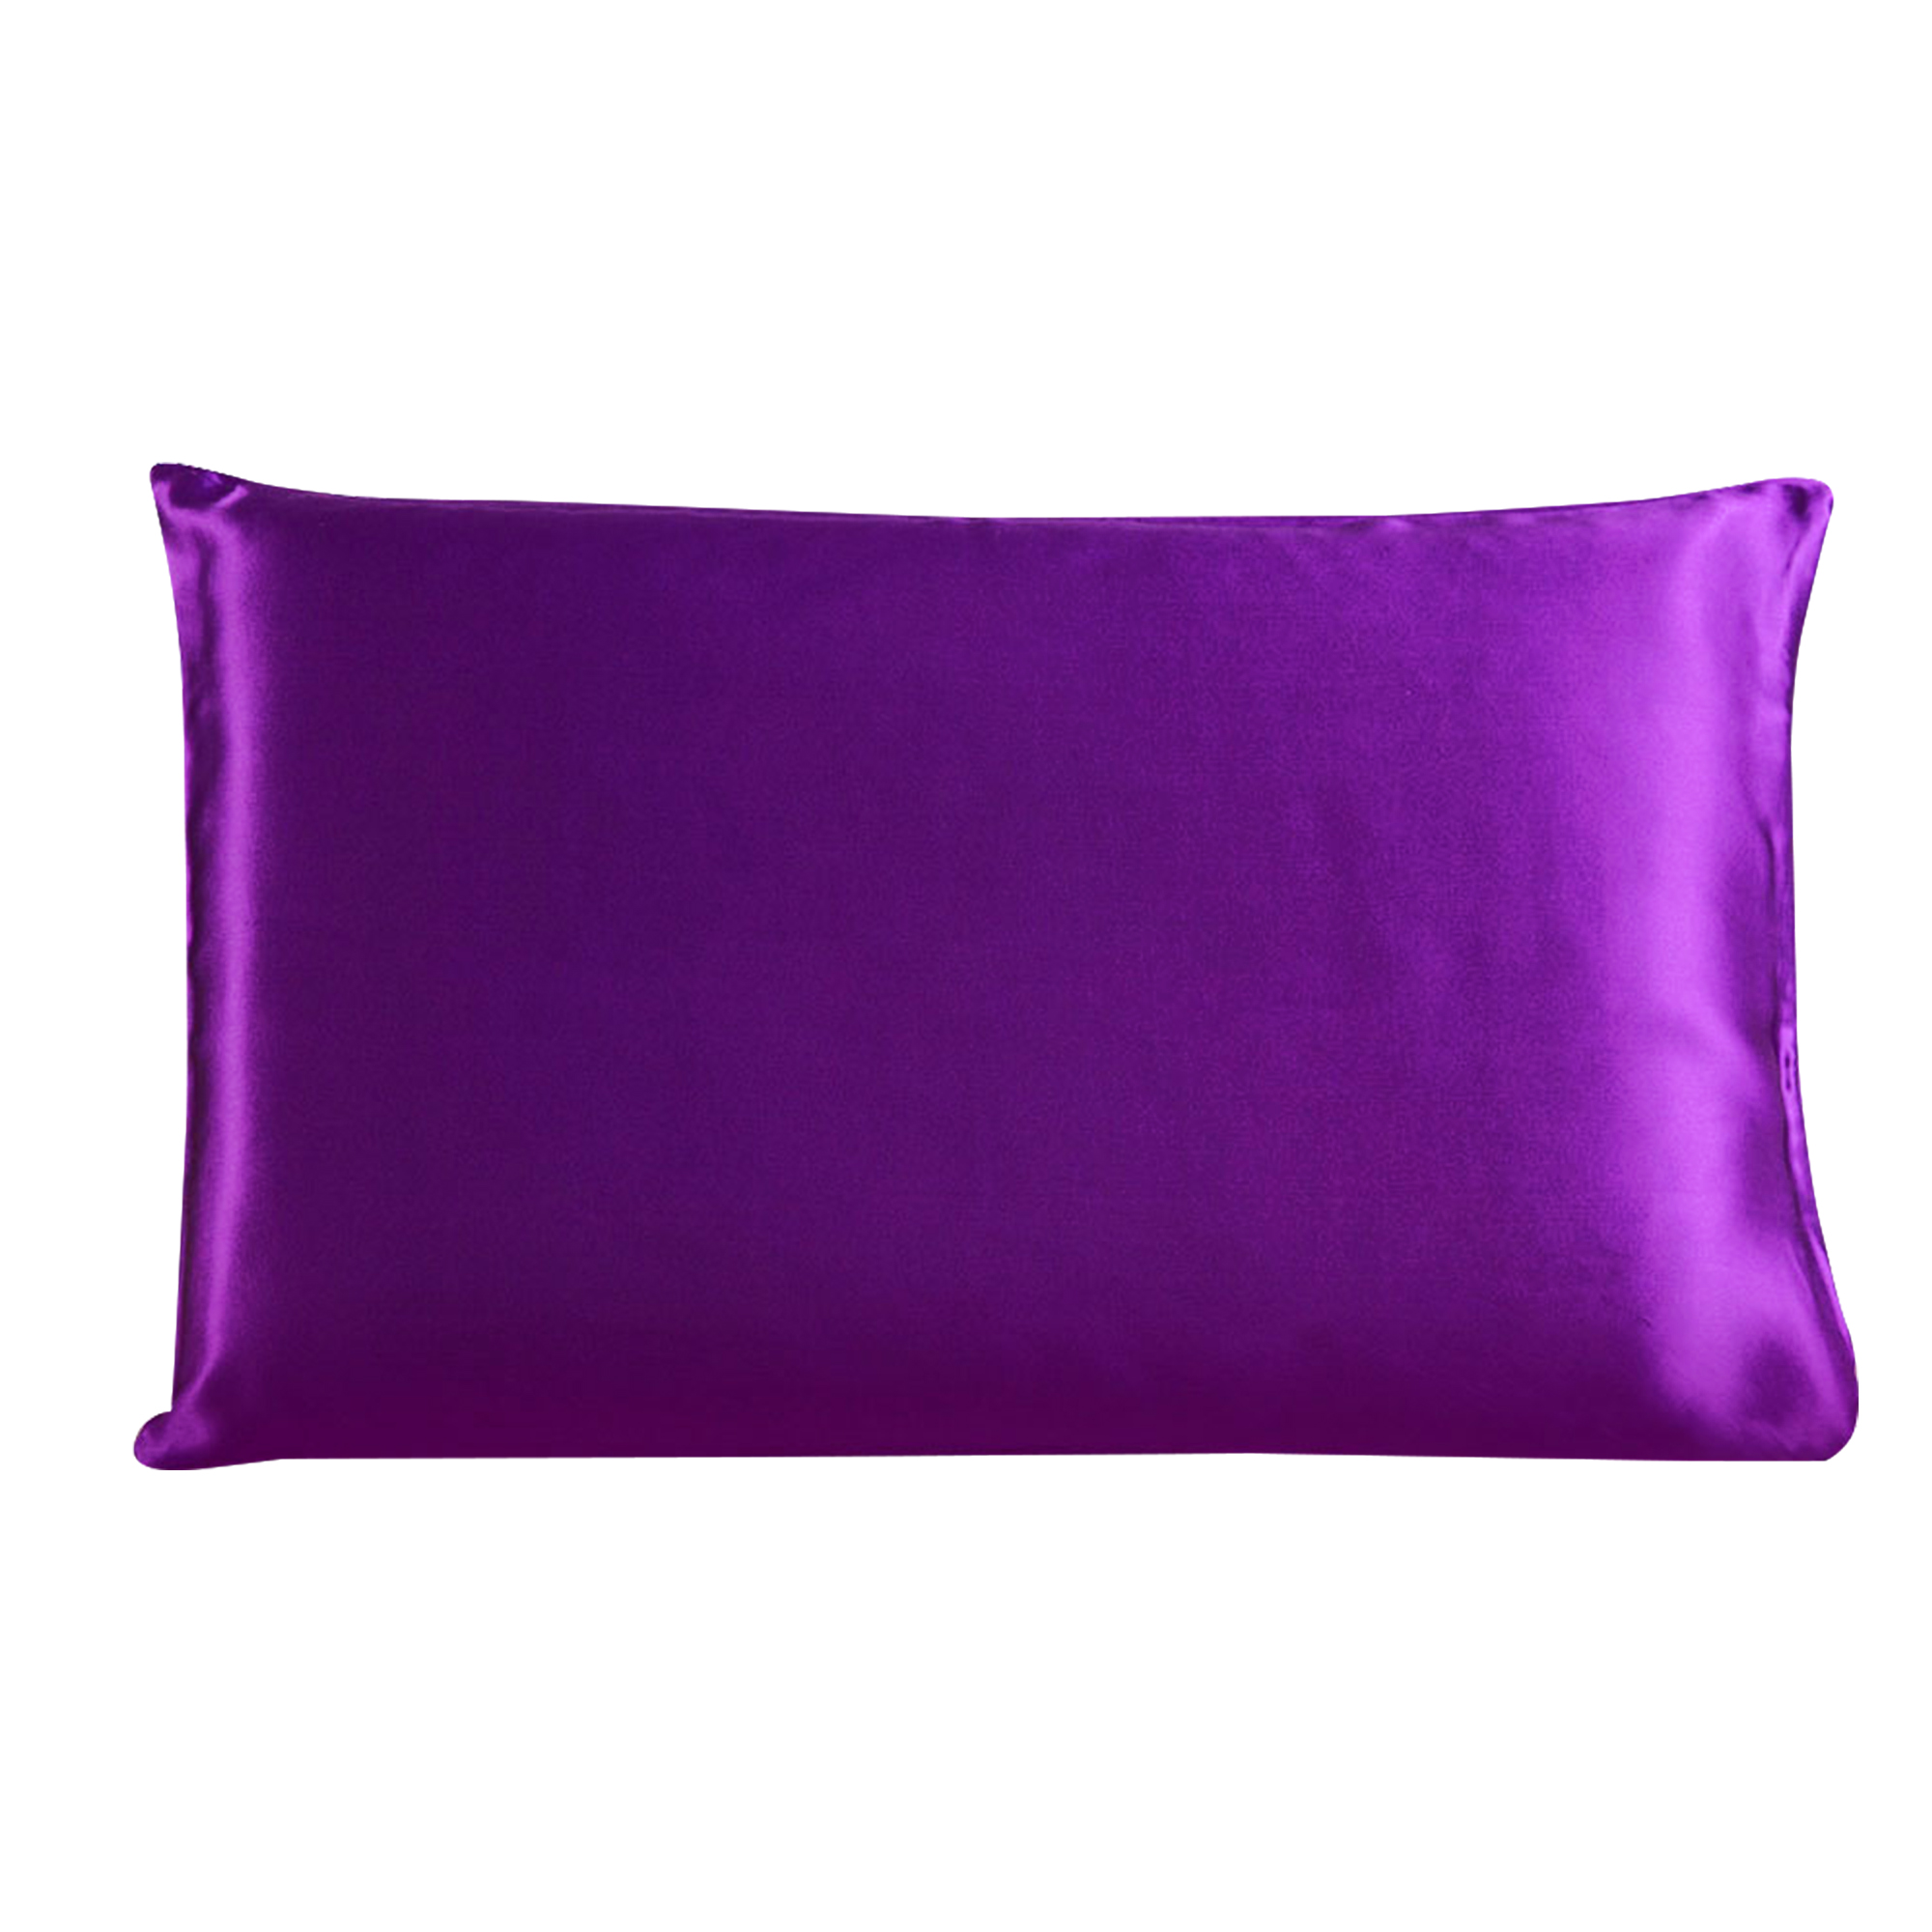 Piccocasa 100% Mulberry Silk Pillow Case Cover Pillowcase Purple Queen Size